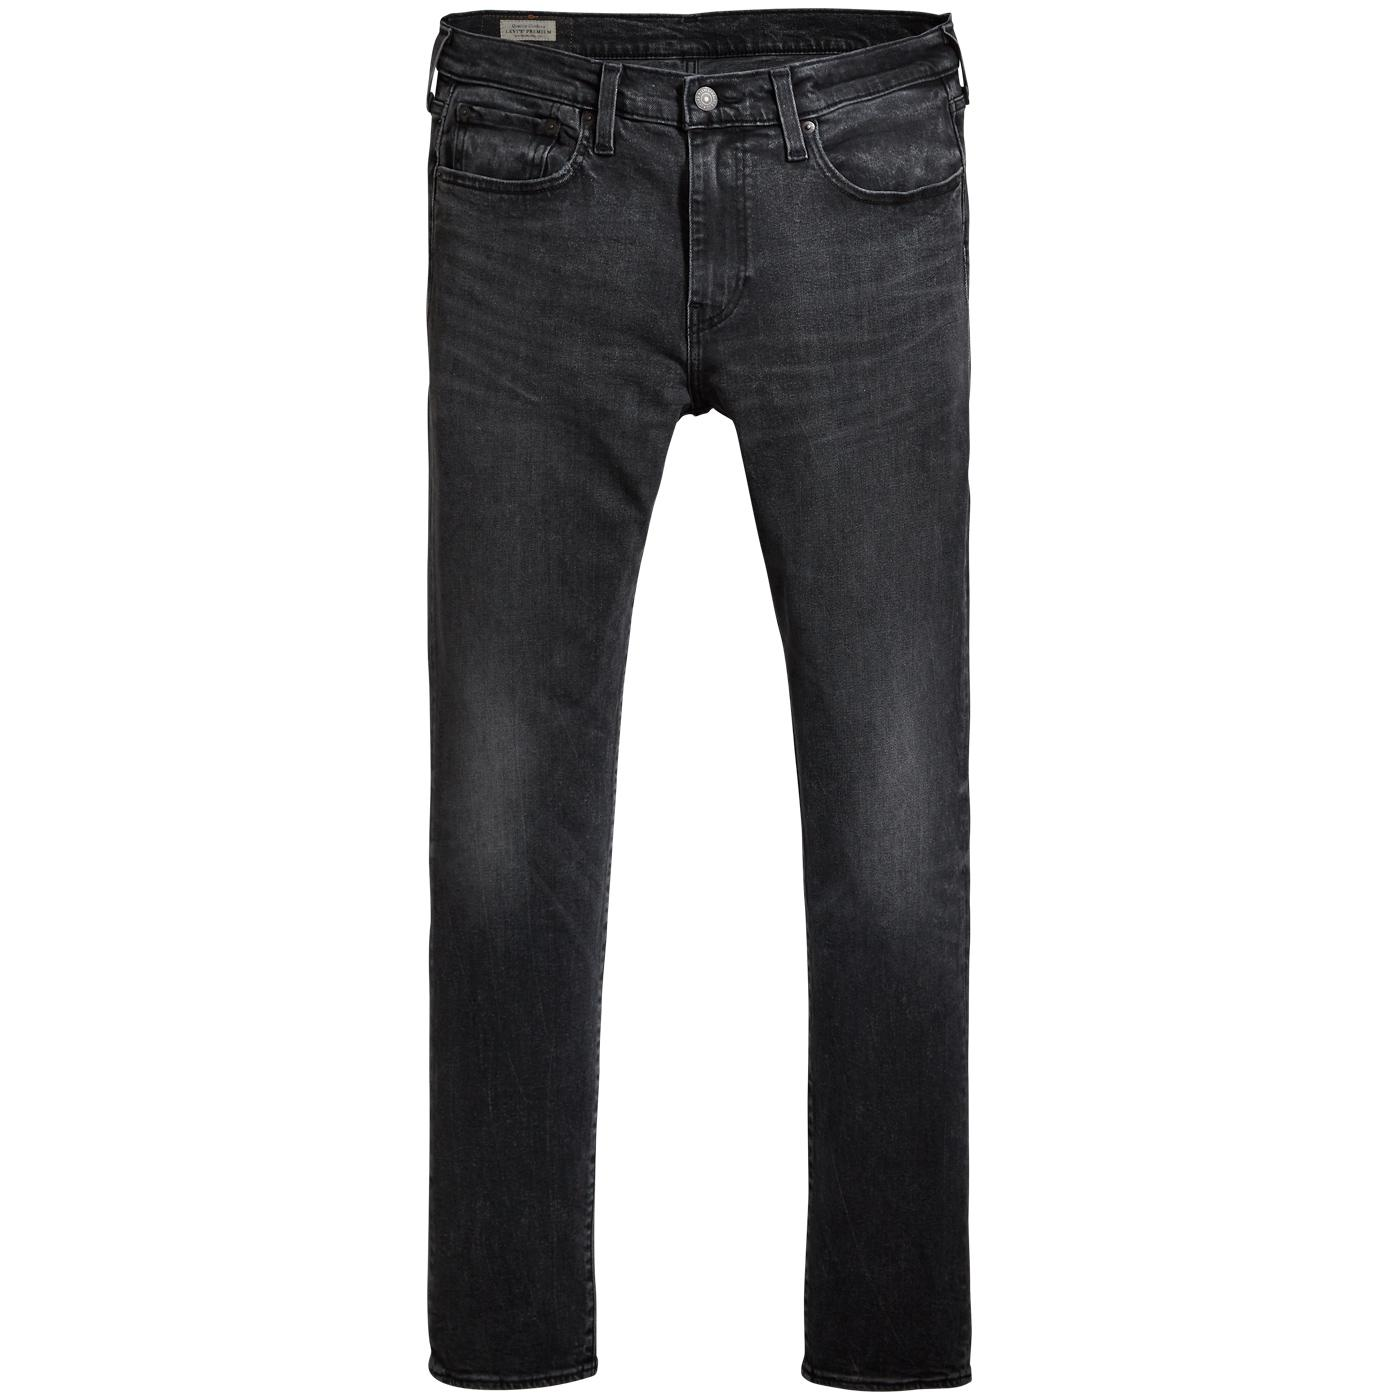 LEVI'S 502 Taper Men's Retro Mod Jeans (King Bee)